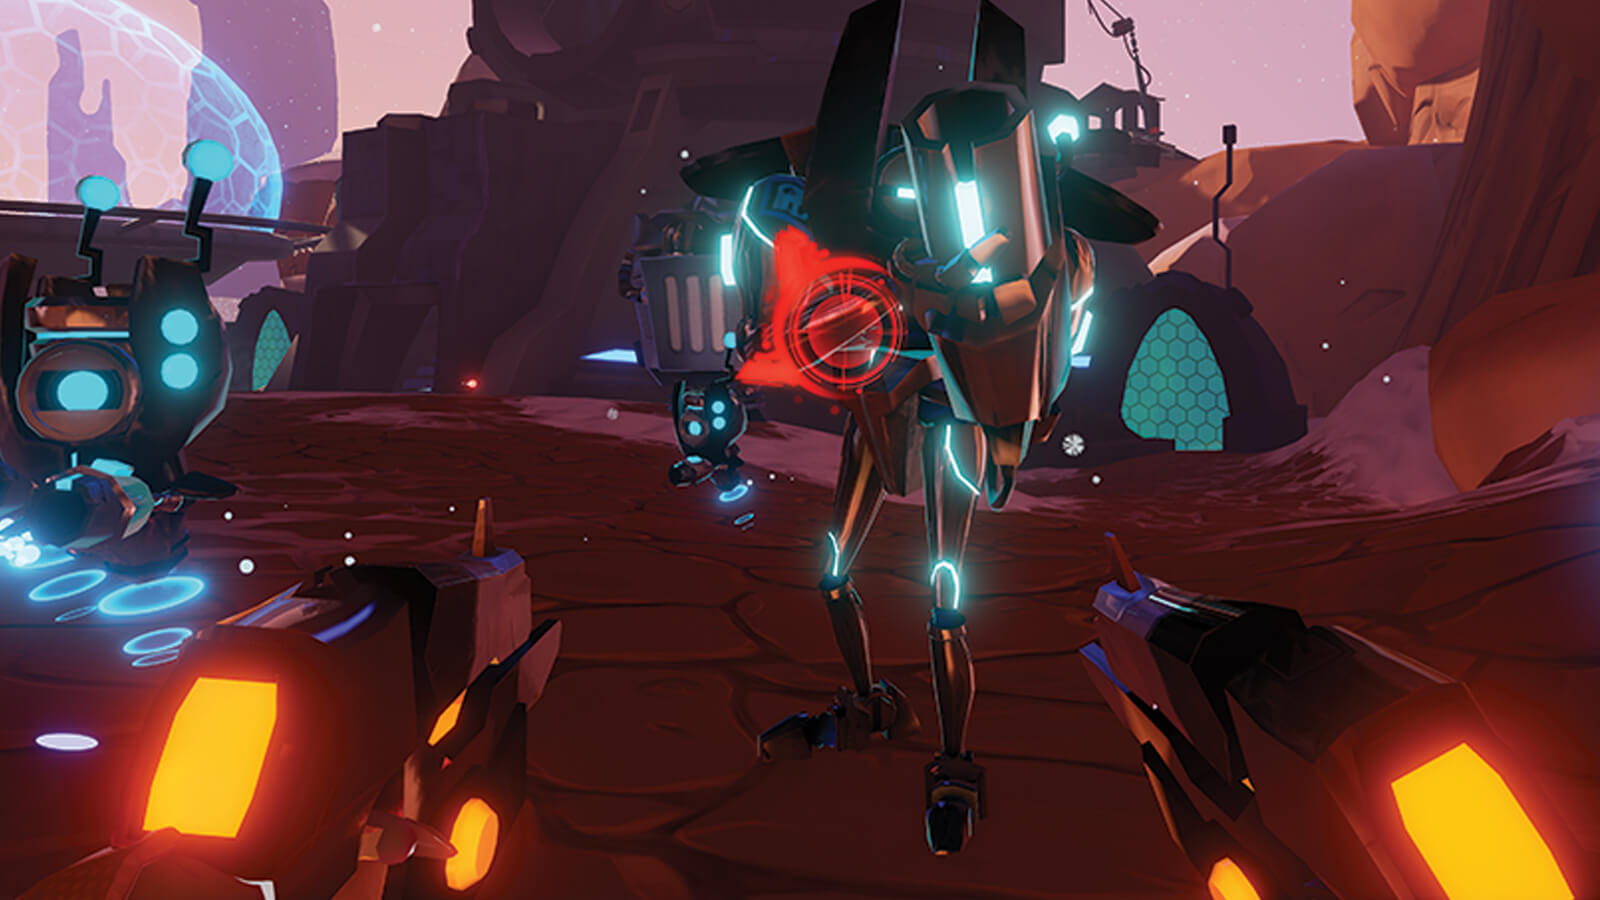 A top-heavy robot with guns for arms approaches the dual-wielding player.